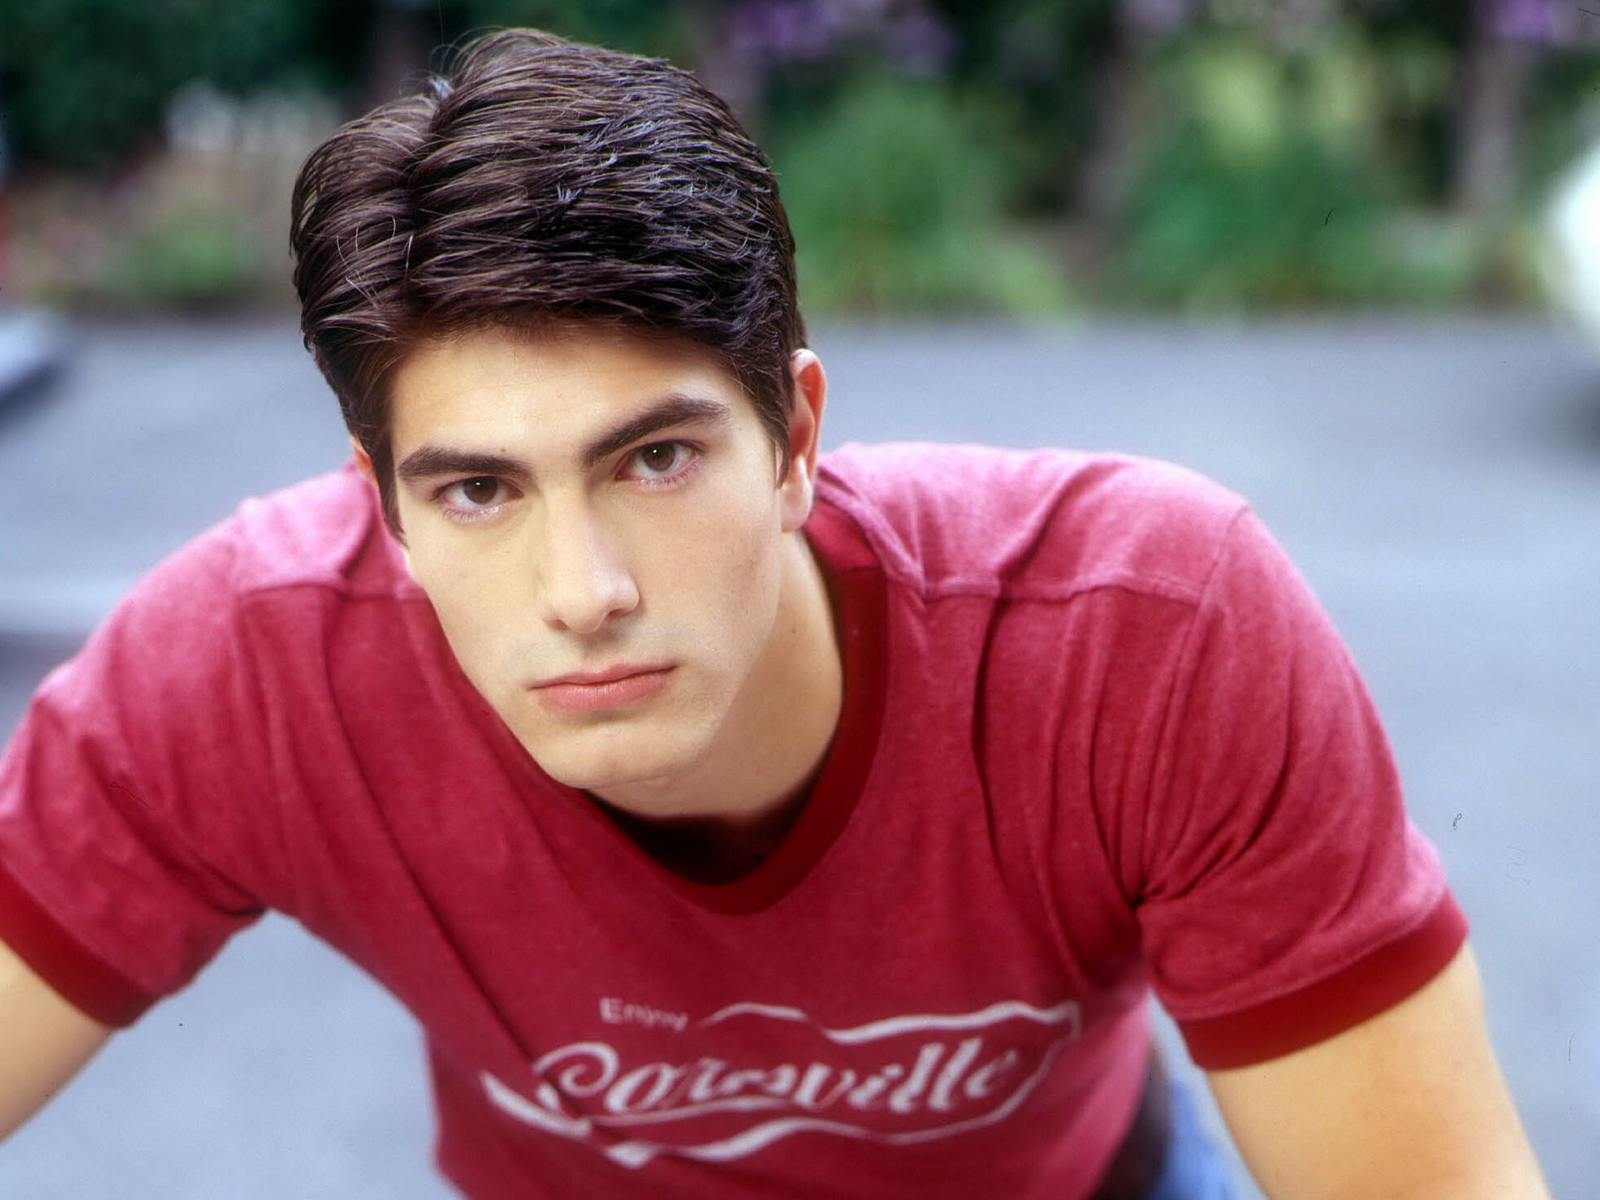 brandon routh wallpaper photos 59231